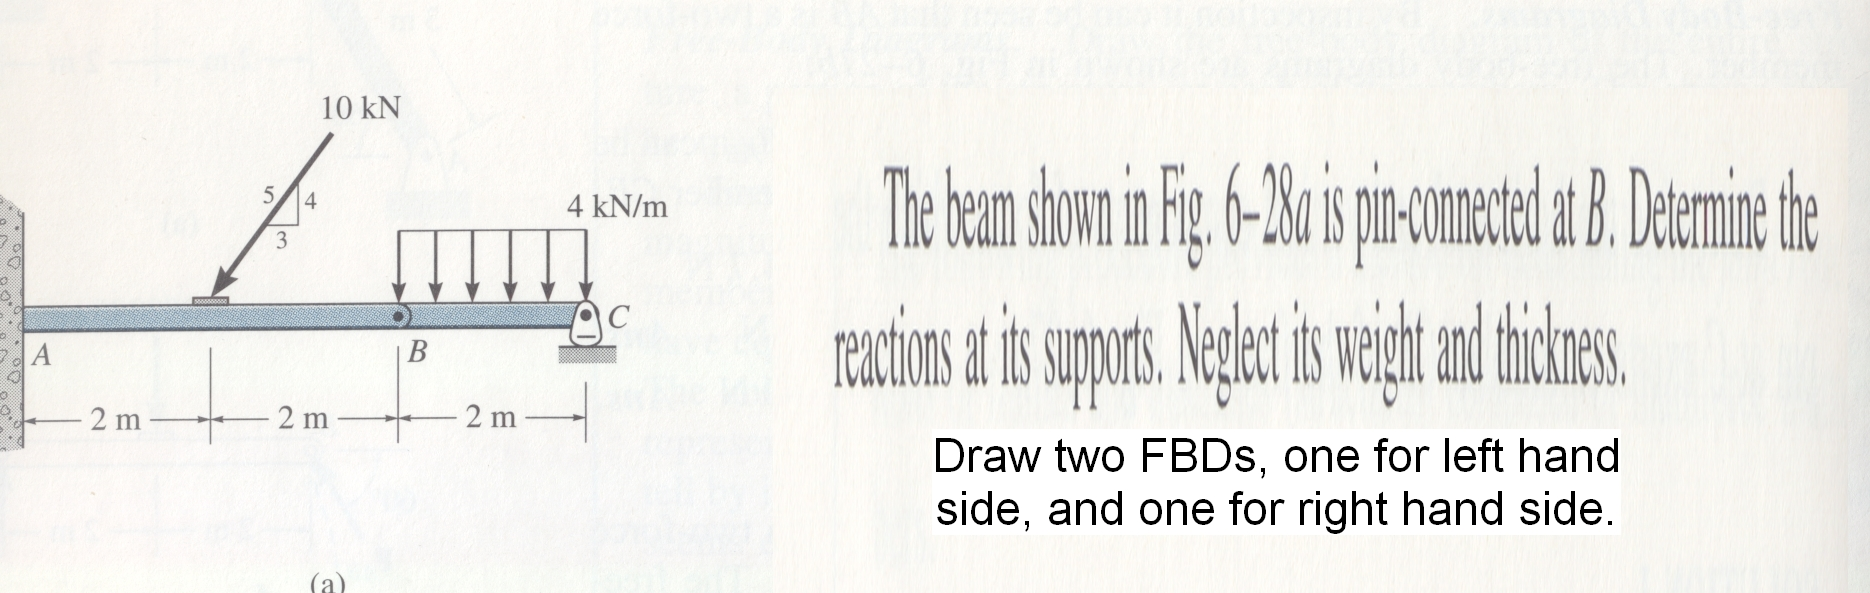 Draw two FBDs, one for left hand side, and one for